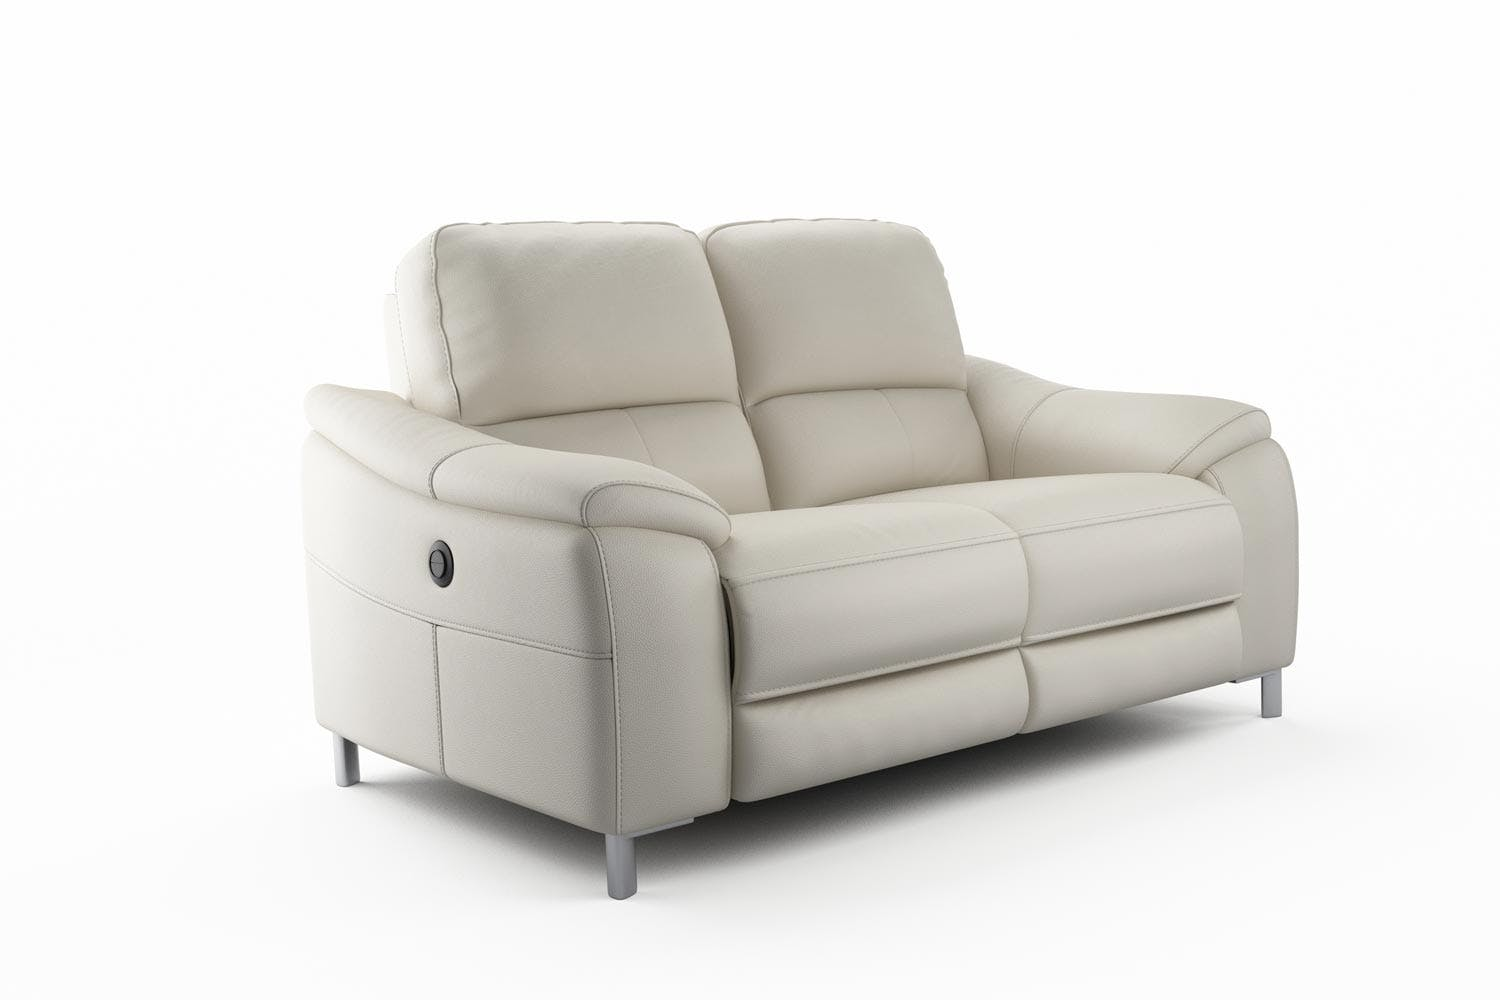 Leather Electric Recliner Sofa Reclining Sofa With Independent Mechanism For Your Head And Feet